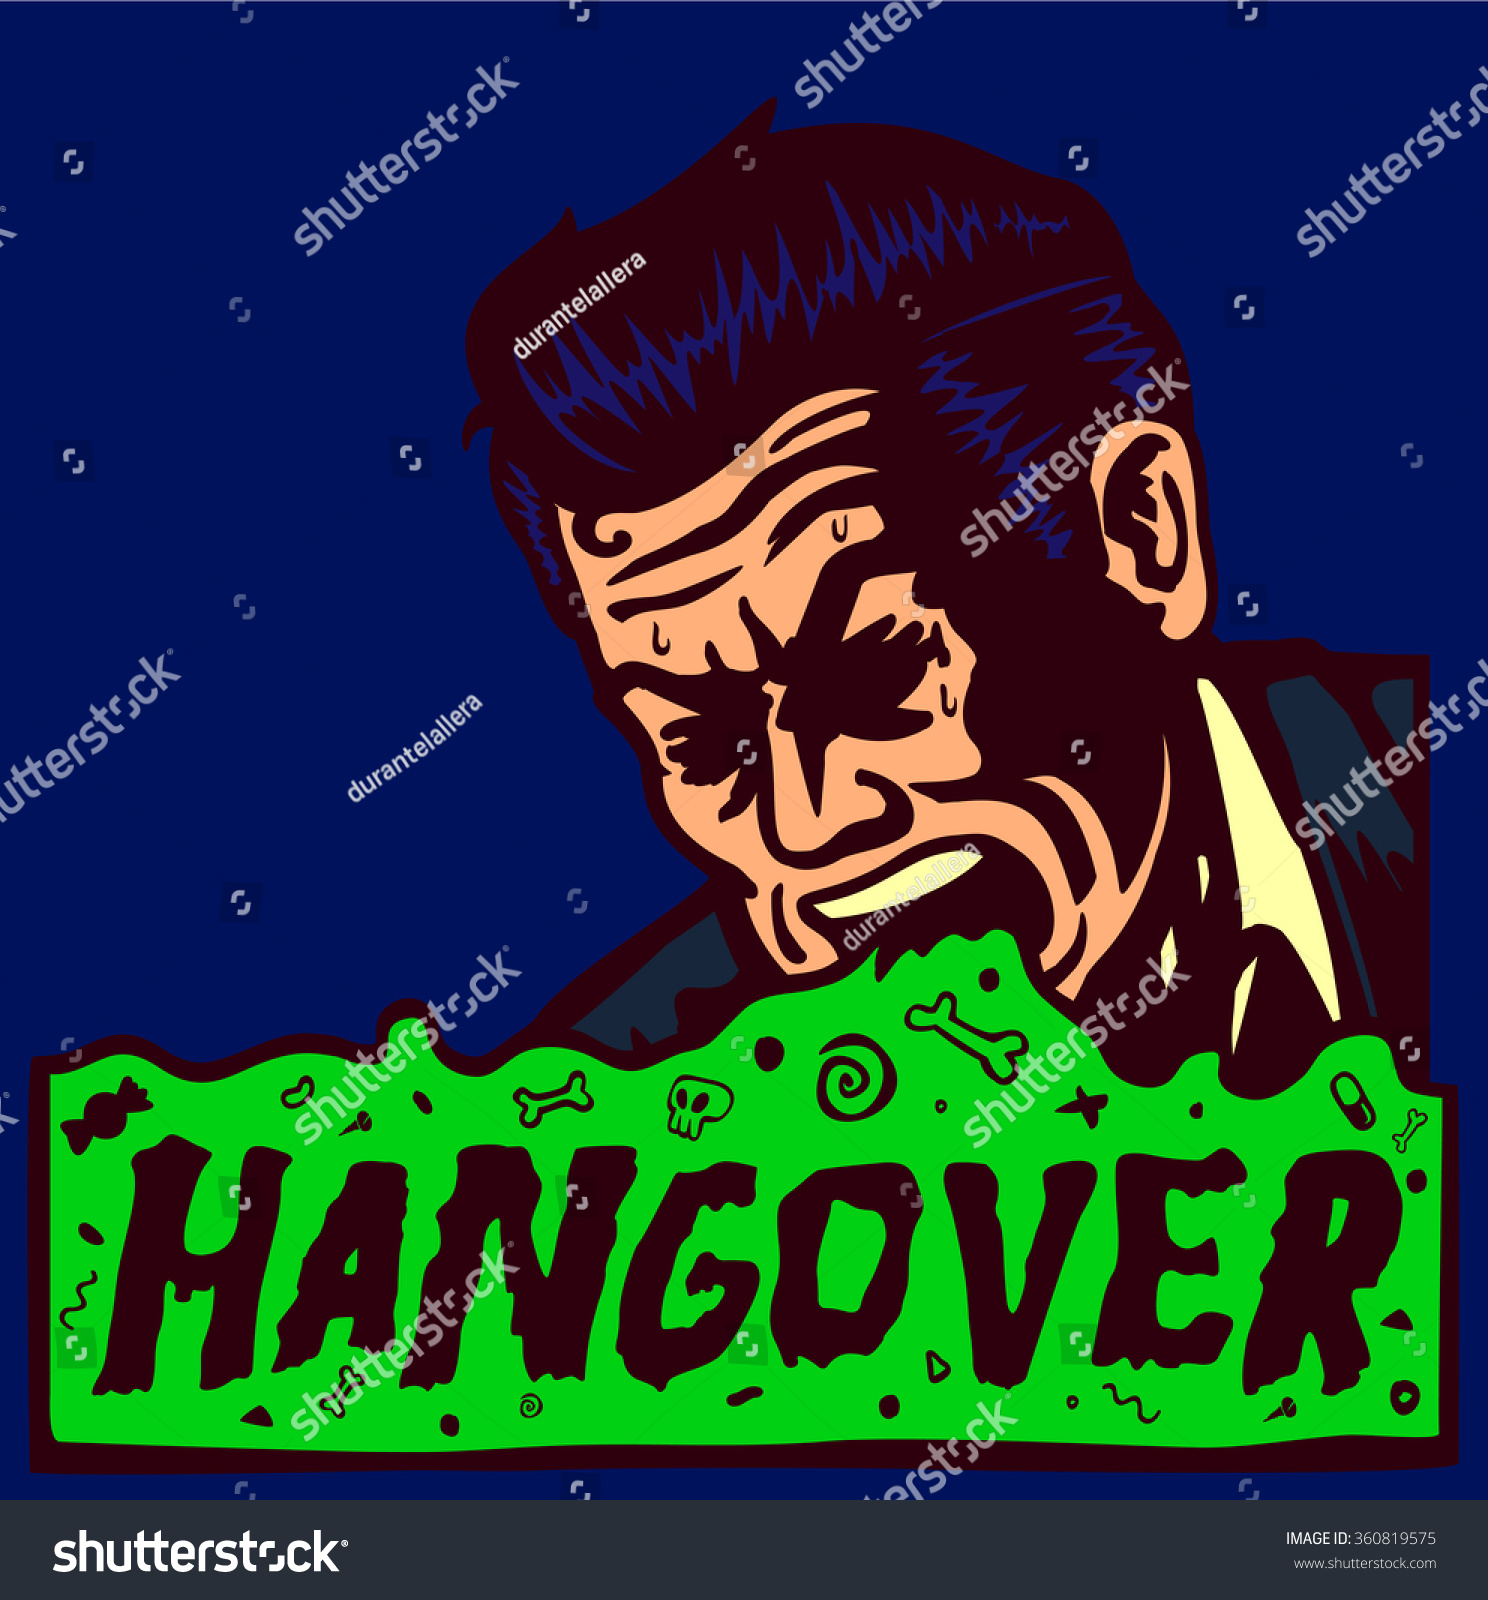 Men holding the word party concept 3d illustration stock photo - Hangover Day After Party Drunk Sick Vintage Man Vomiting Throwing Up Alcohol Abuse